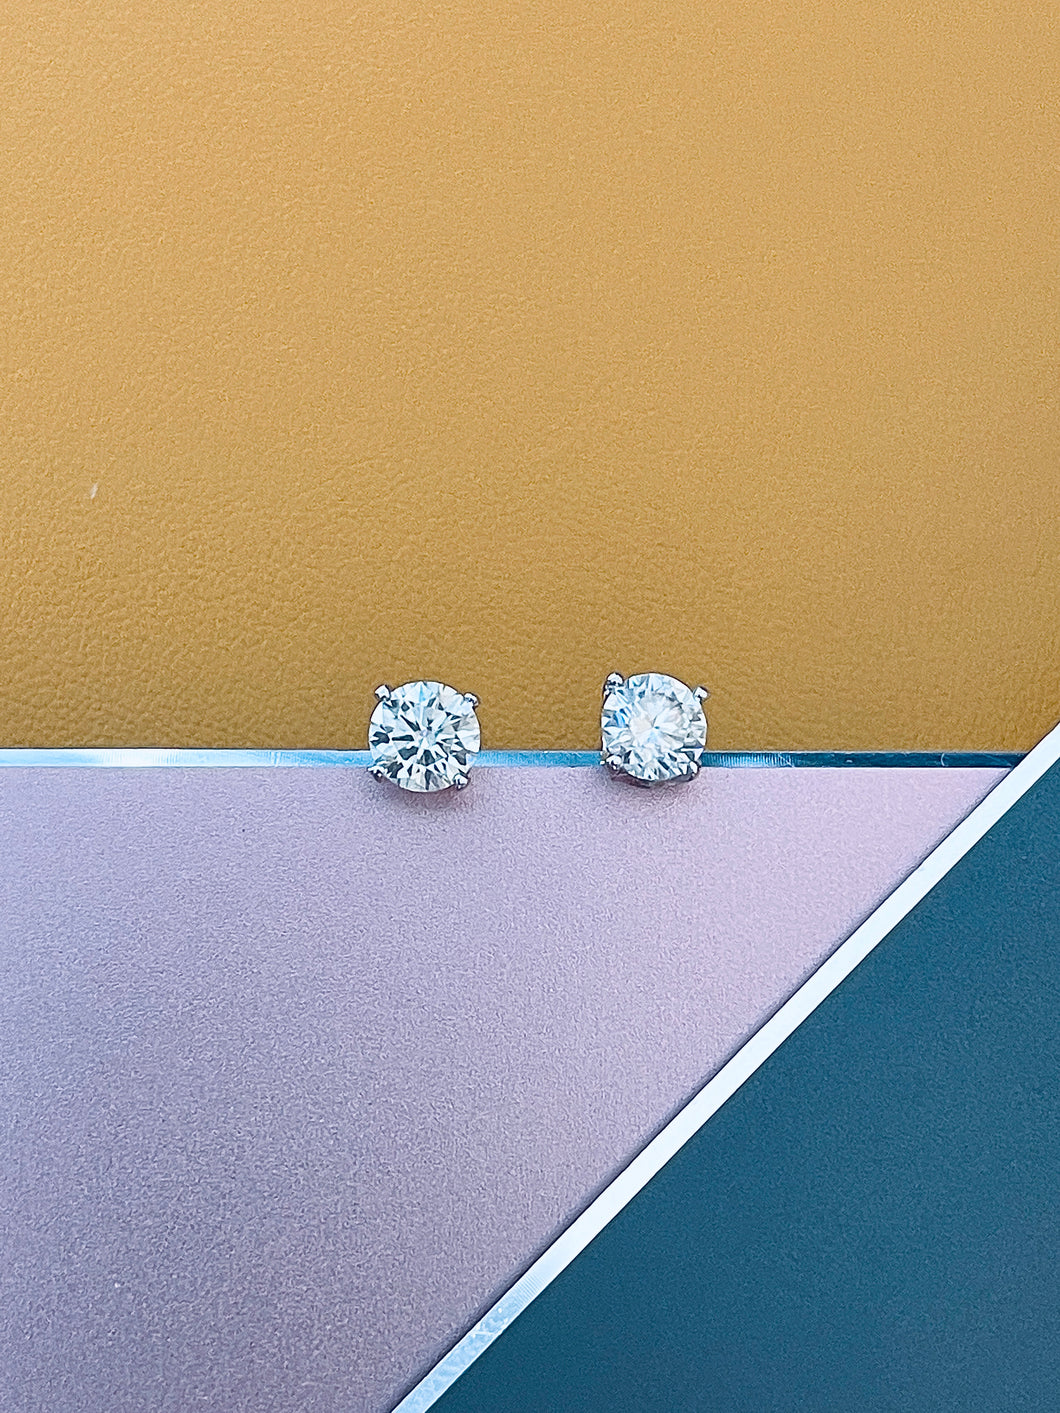 MAYA - 925 1ct Round Brilliant Cut Moissanite Stud Earrings In Silver